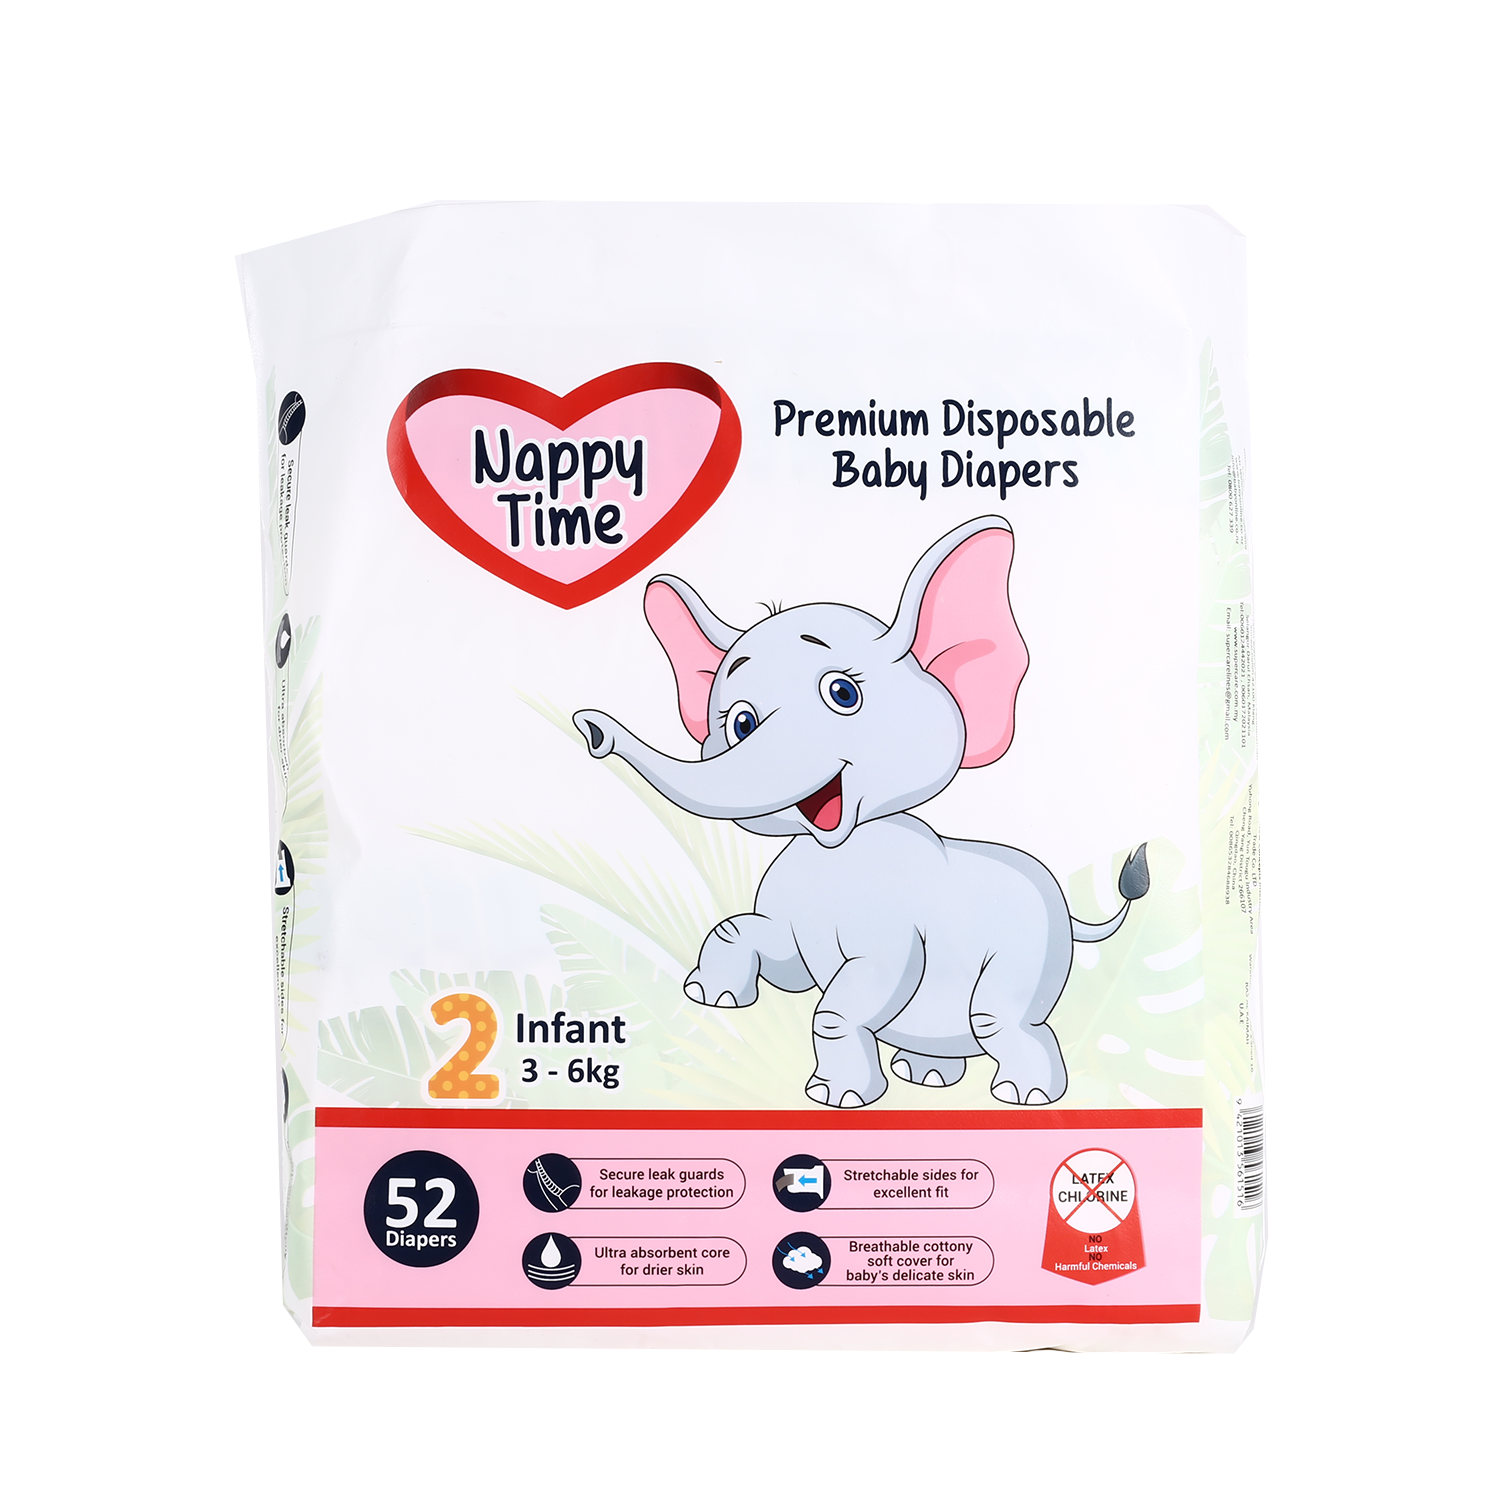 Nappy Time Premium Disposable Baby Diapers 2 - Infant Up to 4.5KG (52PCS)